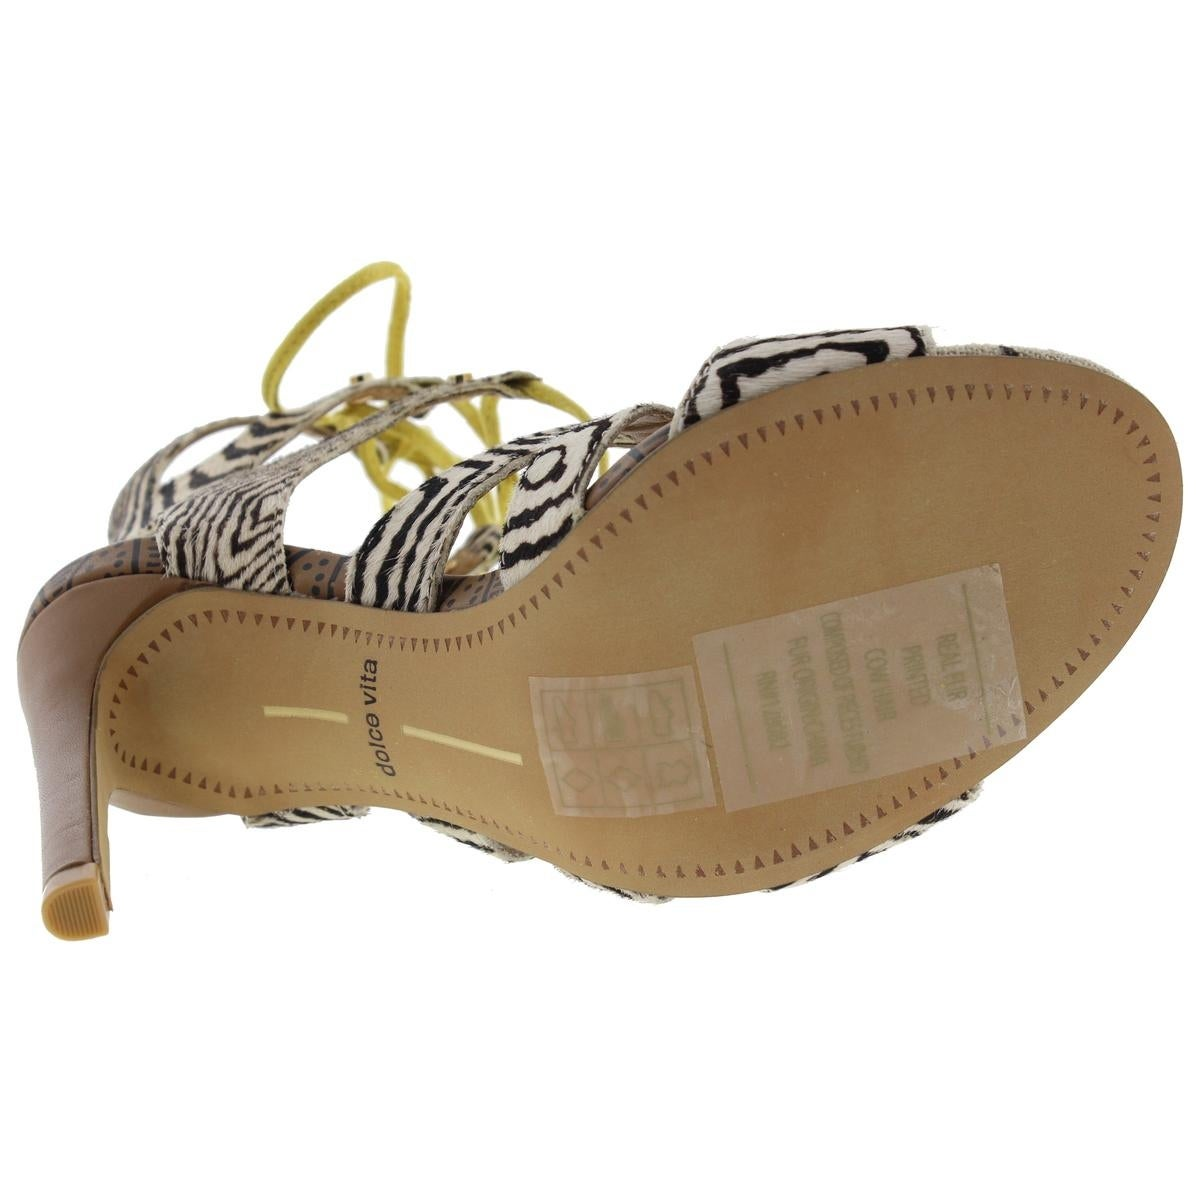 02ce90efa6d Shop Dolce Vita Womens Howie Gladiator Sandals Studded Heels - Free  Shipping Today - Overstock - 14104342